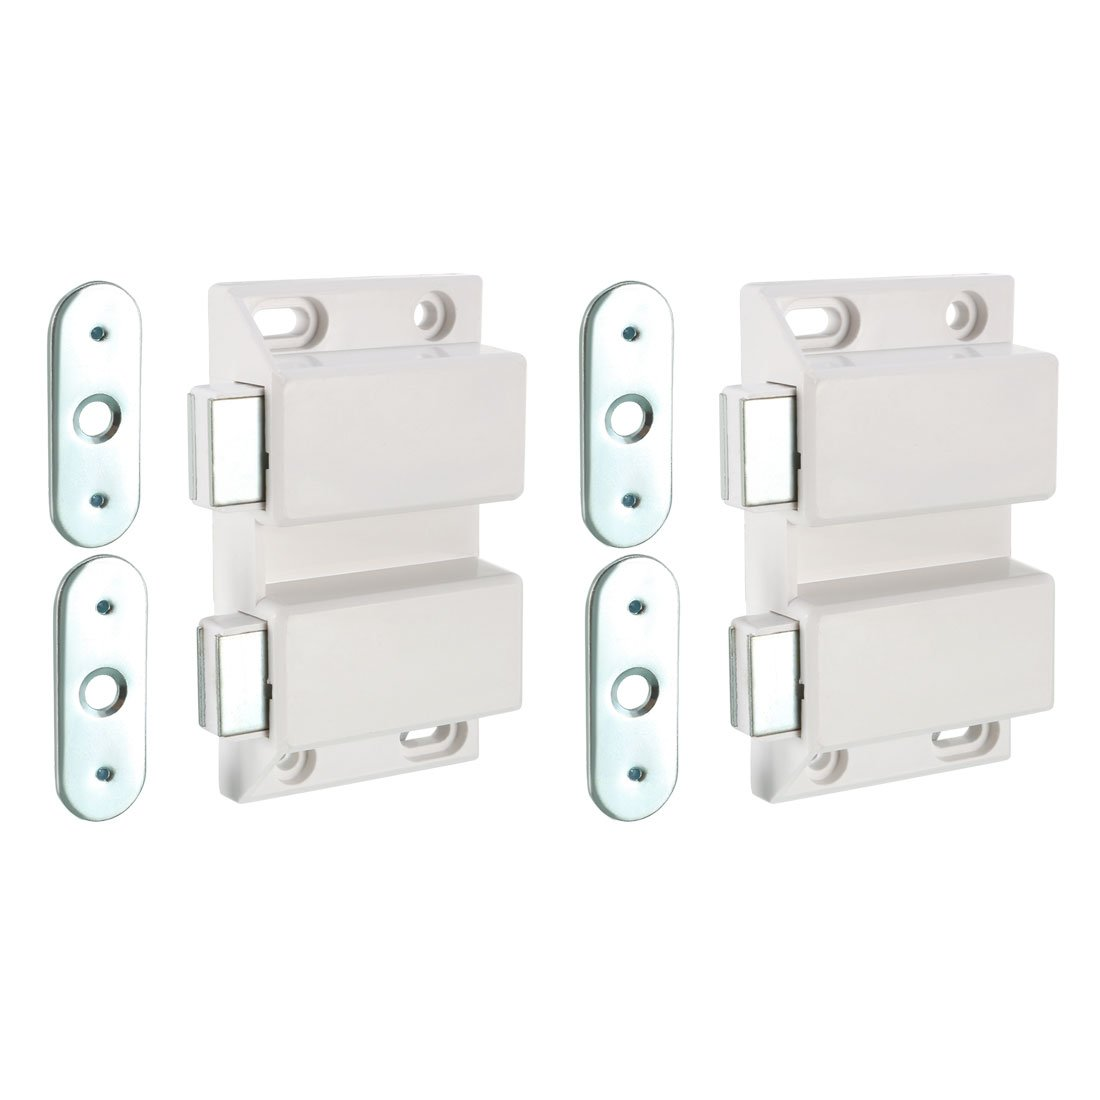 uxcell Double Magnetic Touch Press Catch Latch Plastic White for Cabinet Door Shutter 5Pcs by uxcell (Image #1)